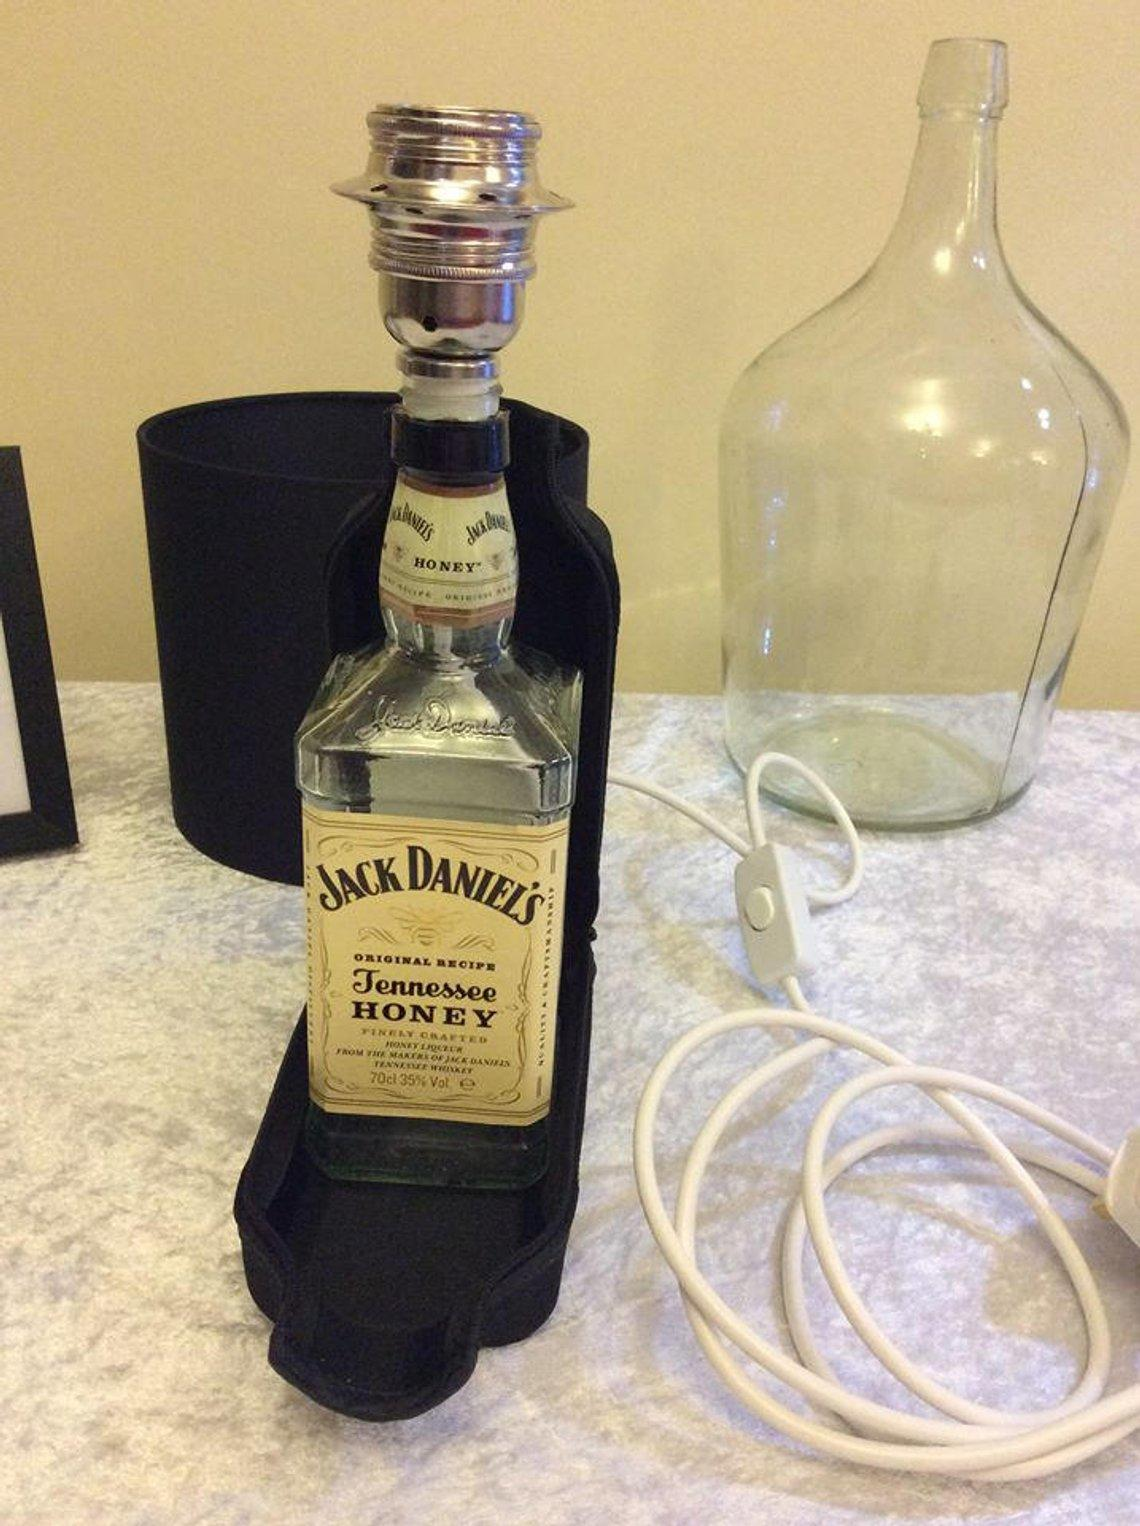 Limited Edition Jack Daniel's Tennessee Honey Whiskey Bottle Lamp with fitted Neoprene Chiller Jacket showing Bee Zipper Free Shipping UK